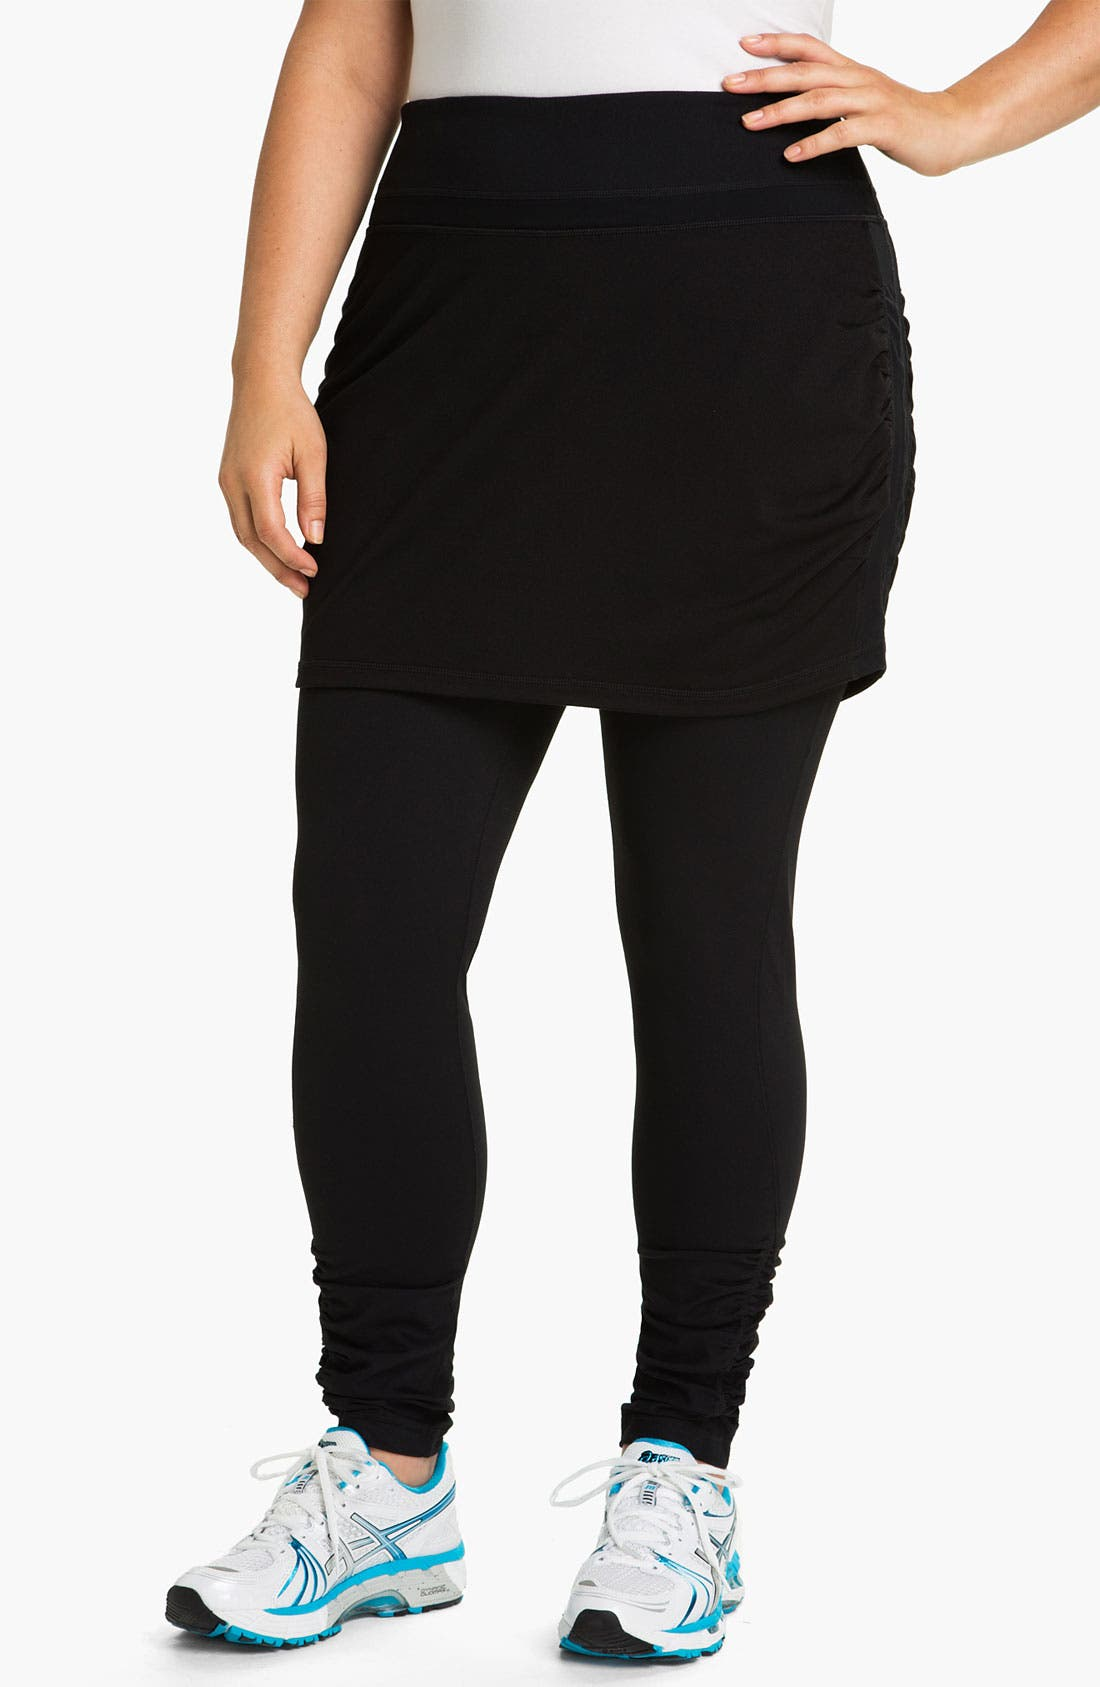 Alternate Image 1 Selected - Zella 'Work It' Skirted Leggings (Plus)